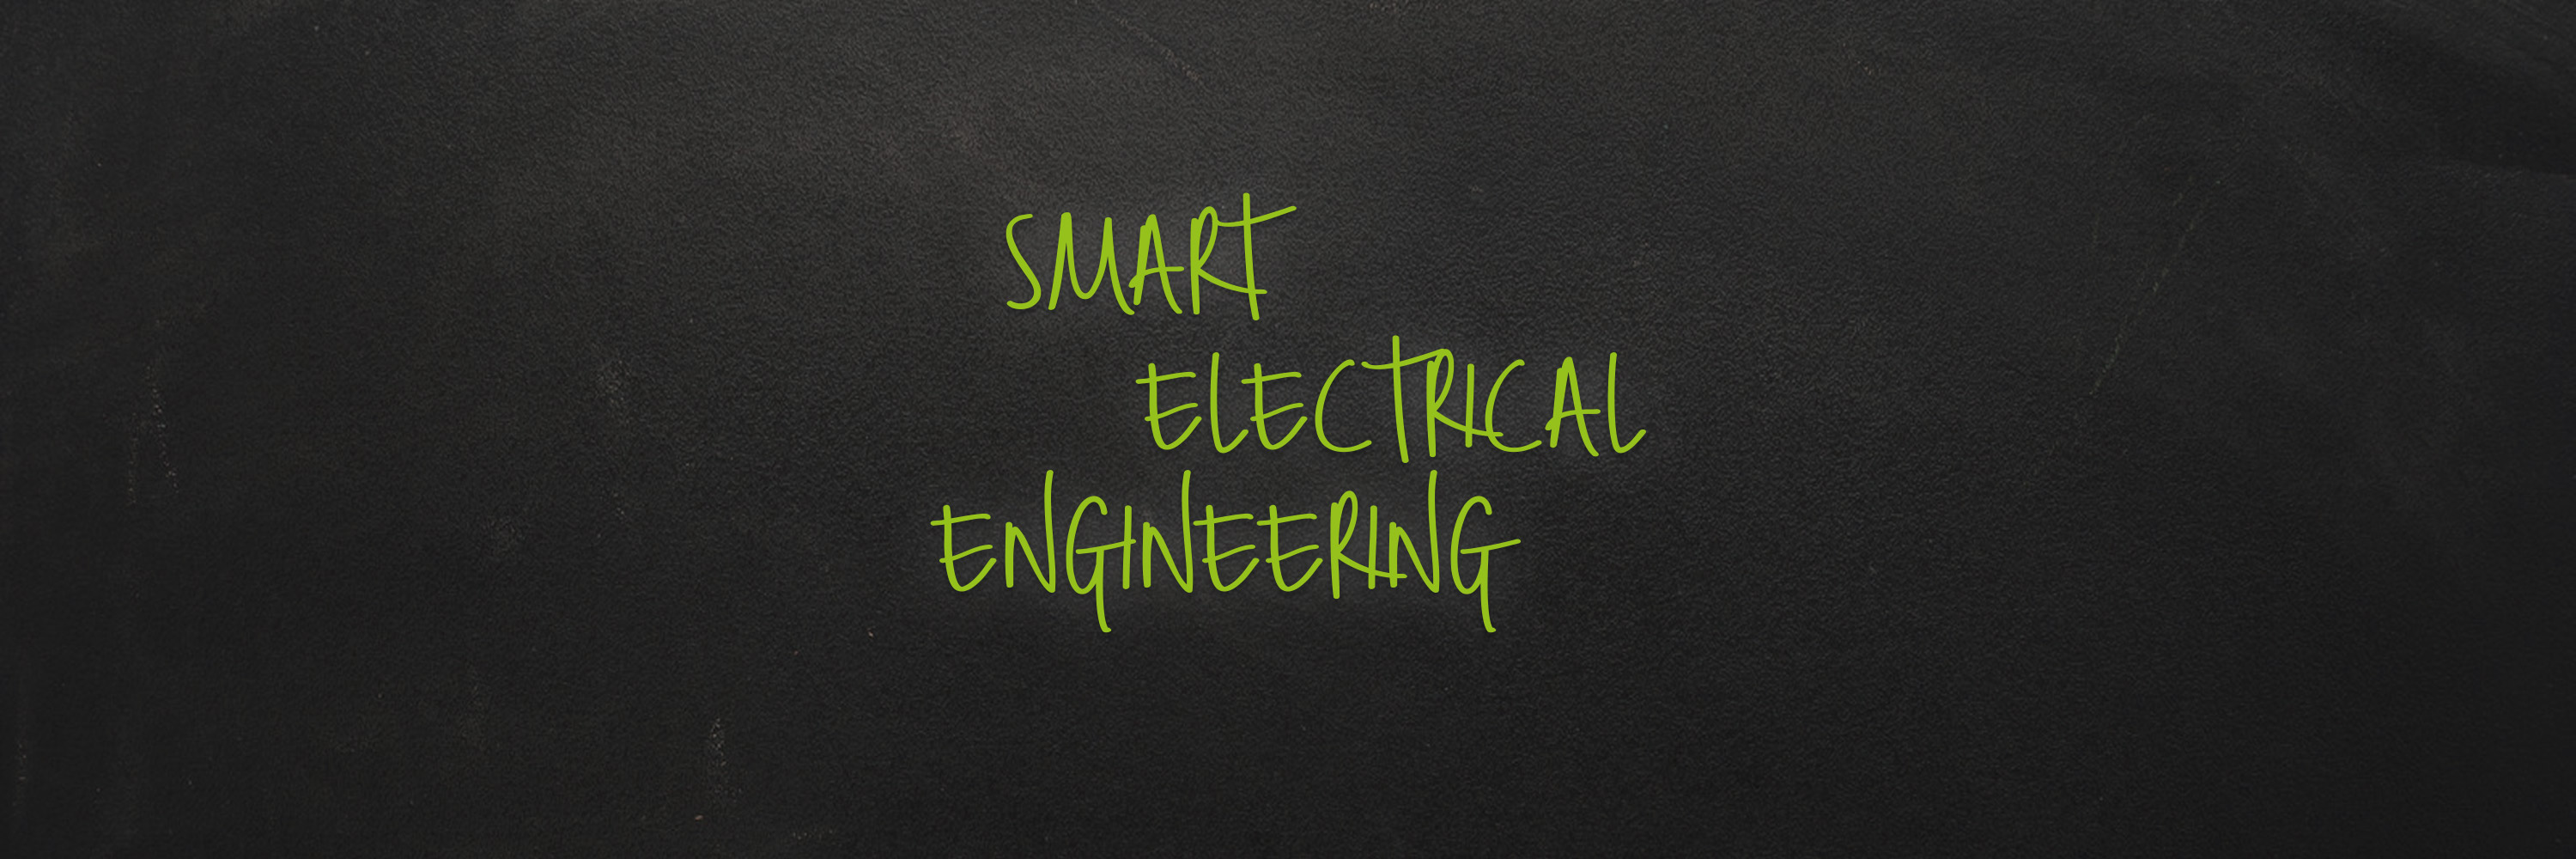 Smart Electrical Engineering